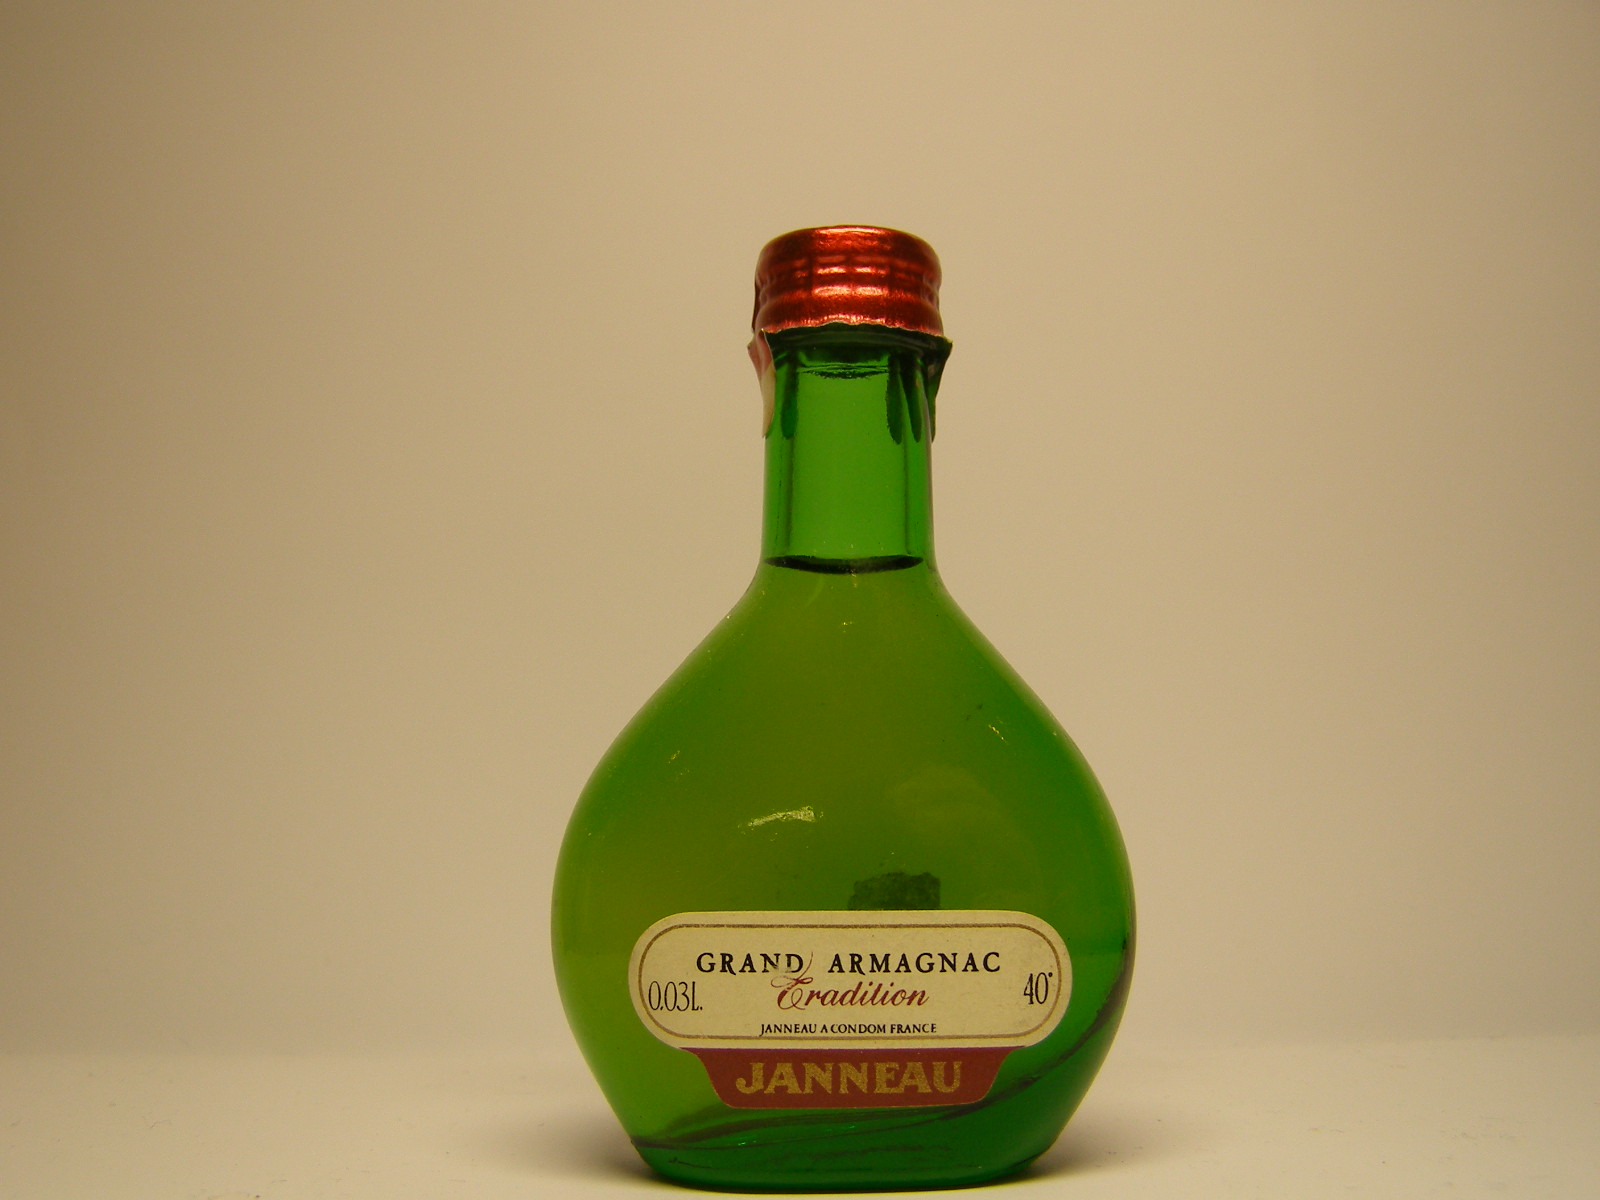 Tradition Grand Armagnac